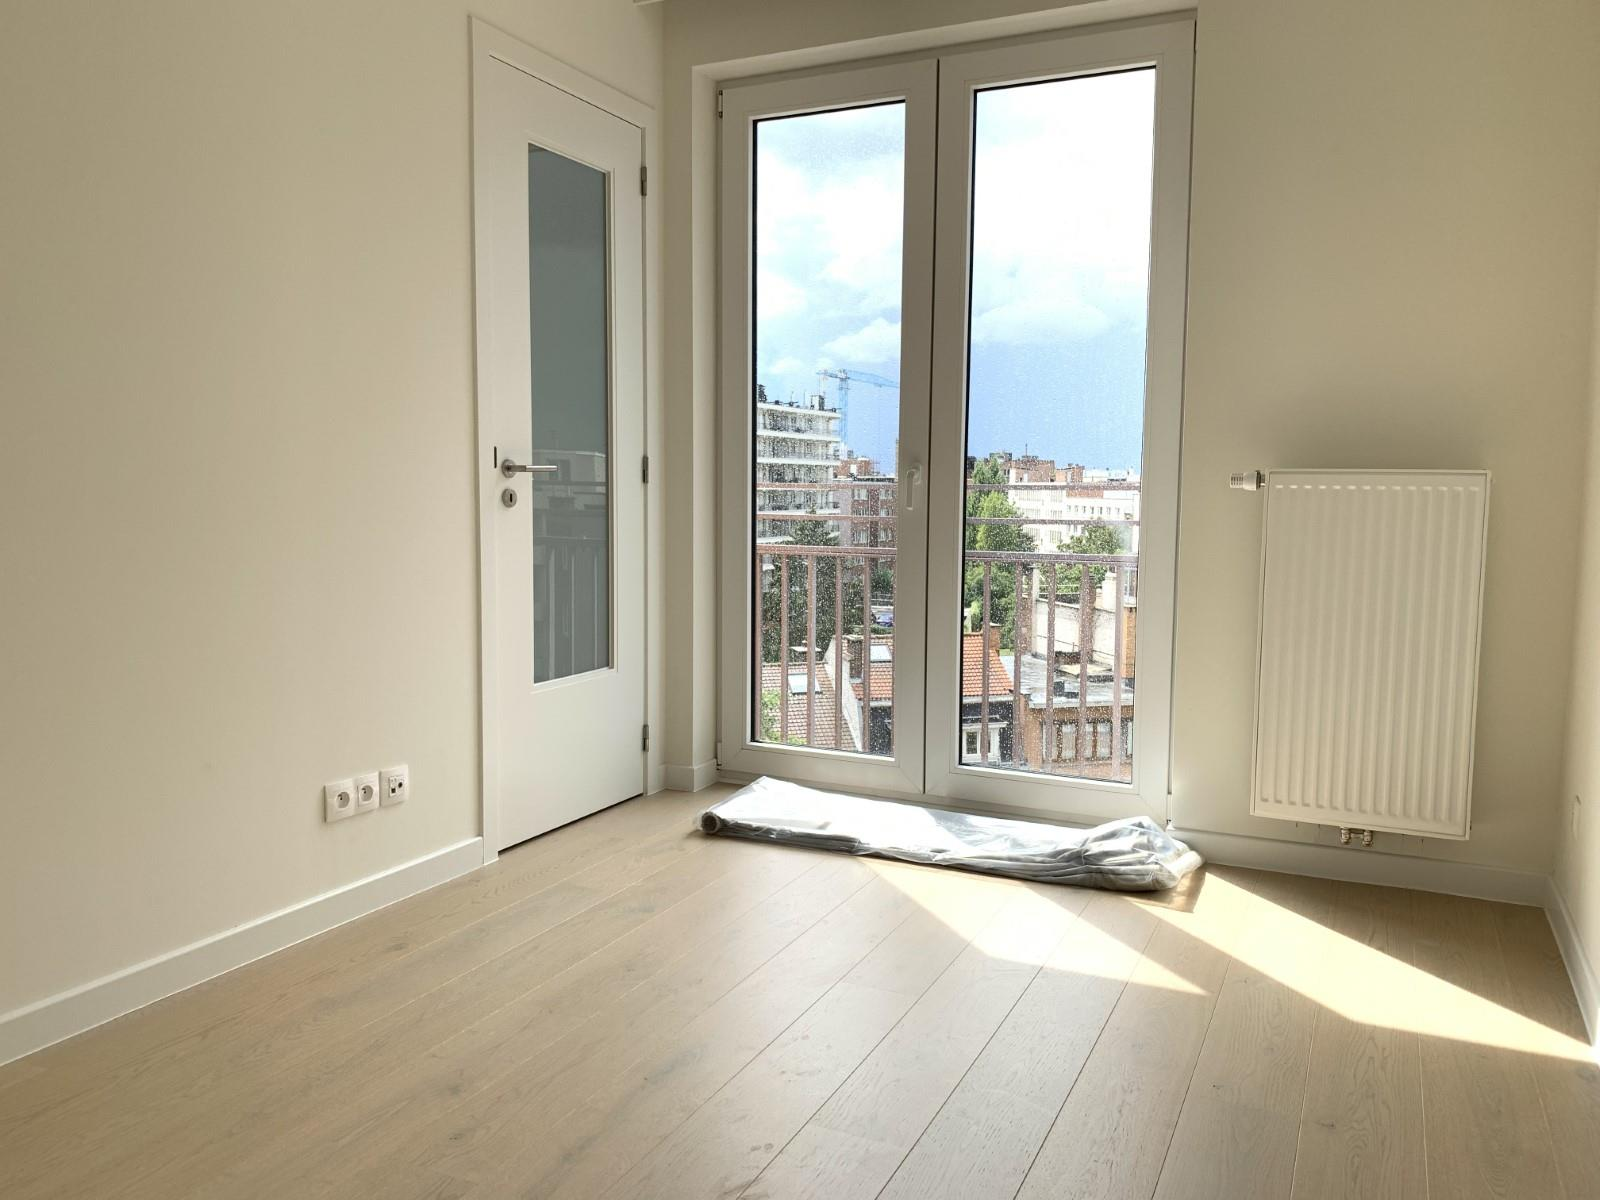 Appartement exceptionnel - Schaerbeek - #3875201-16